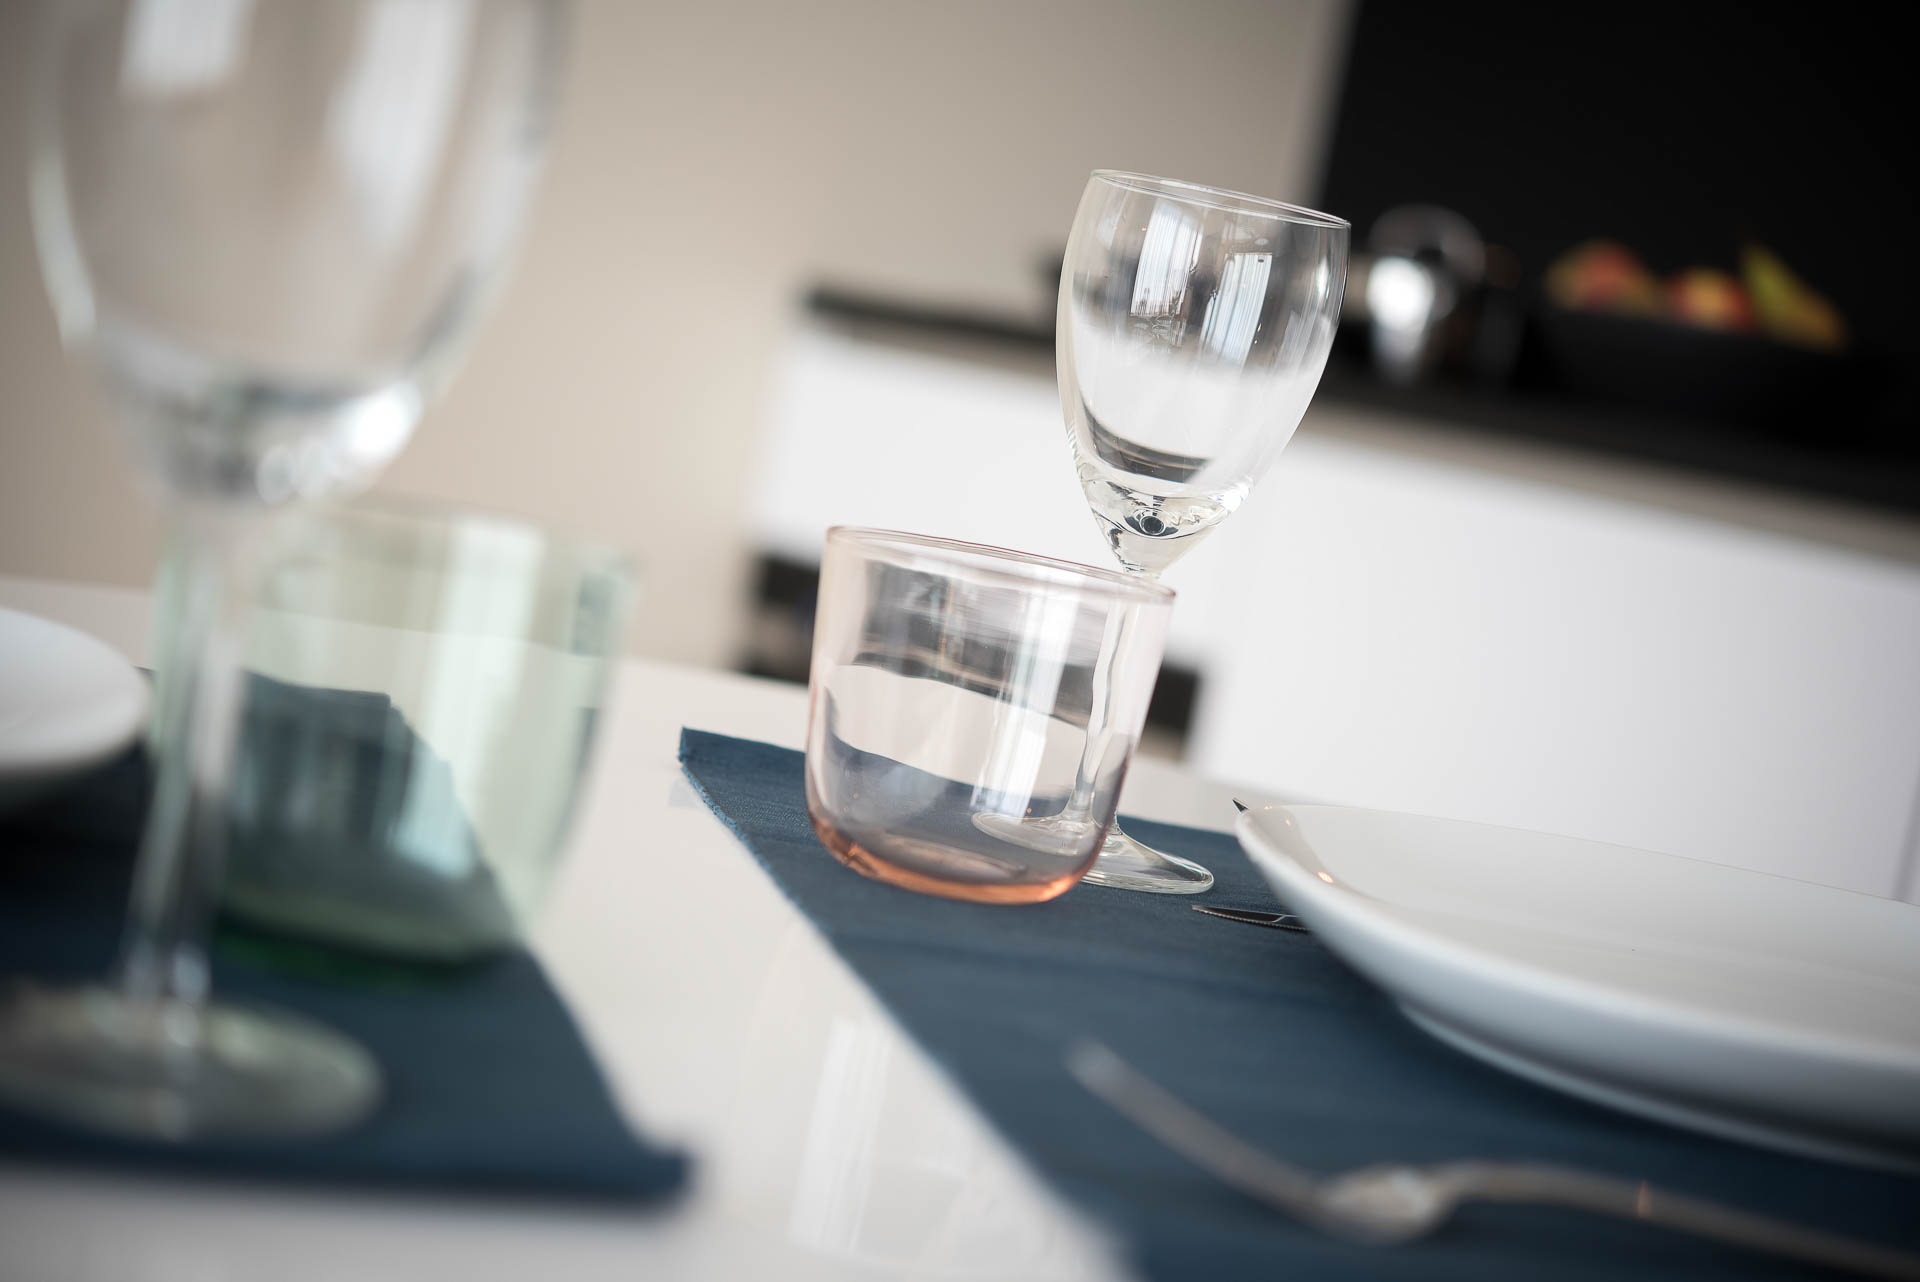 Glassware at PREMIER SUITES Antwerp